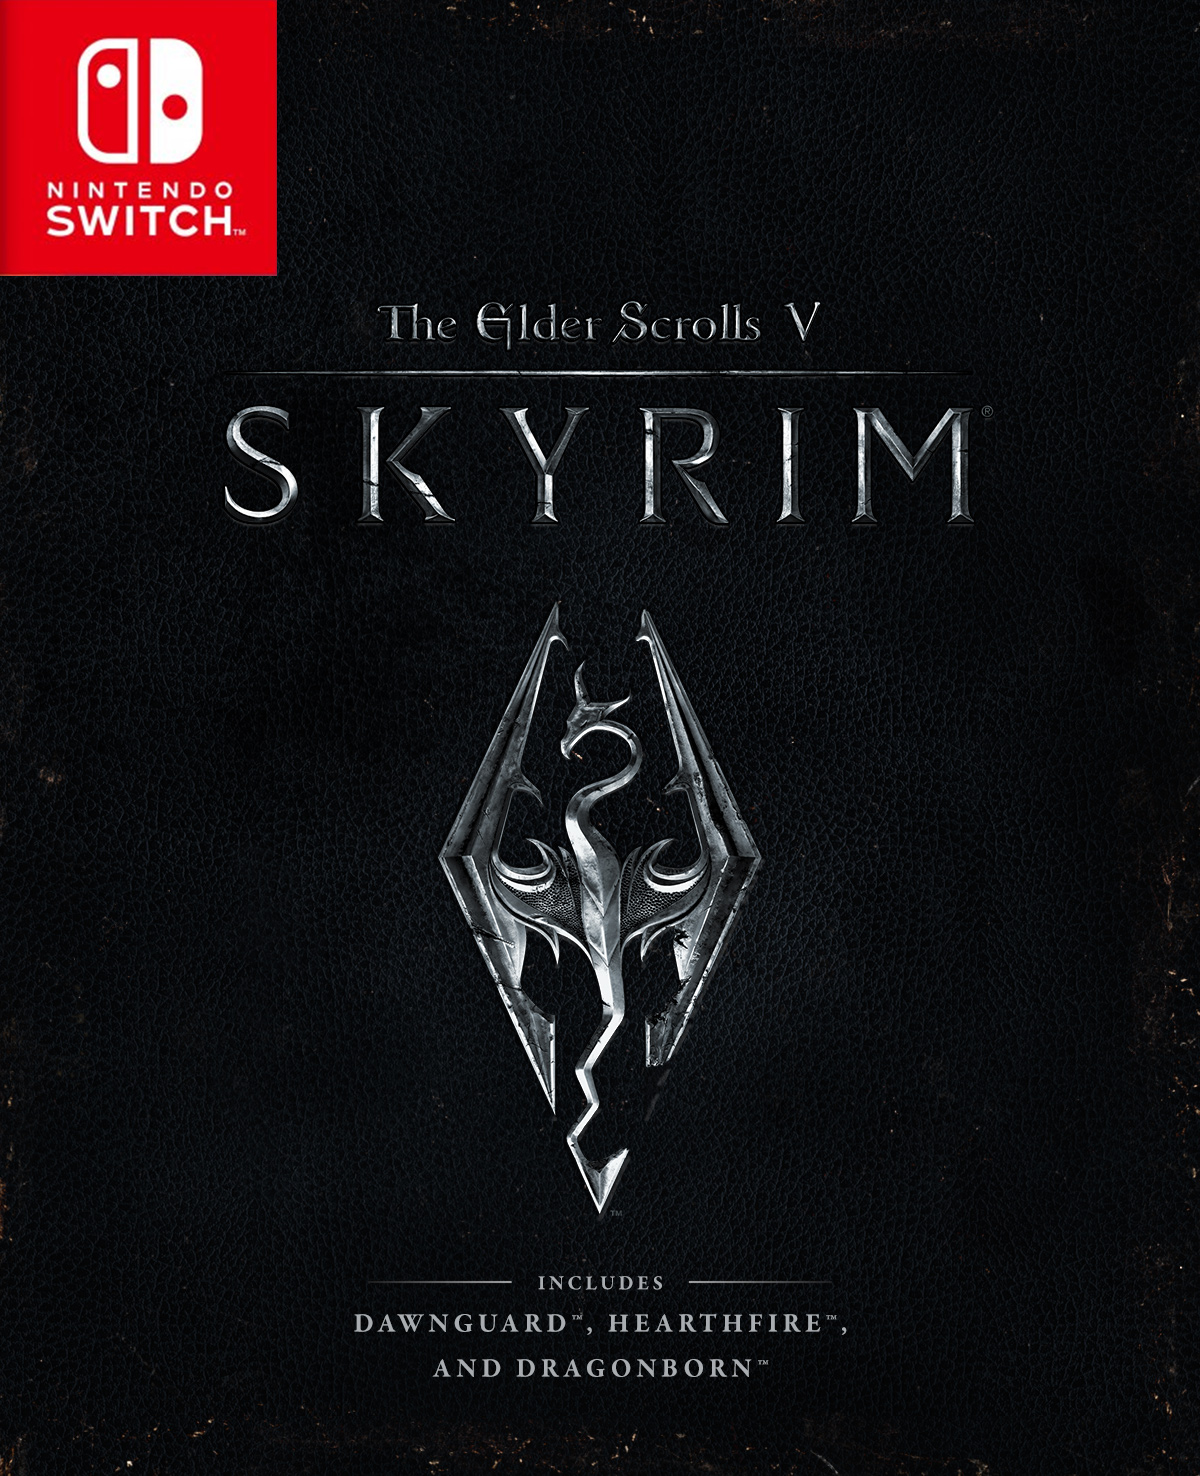 Nintendo Switch版『The Elder Scrolls V:Skyrim』のファイルサイズが判明!